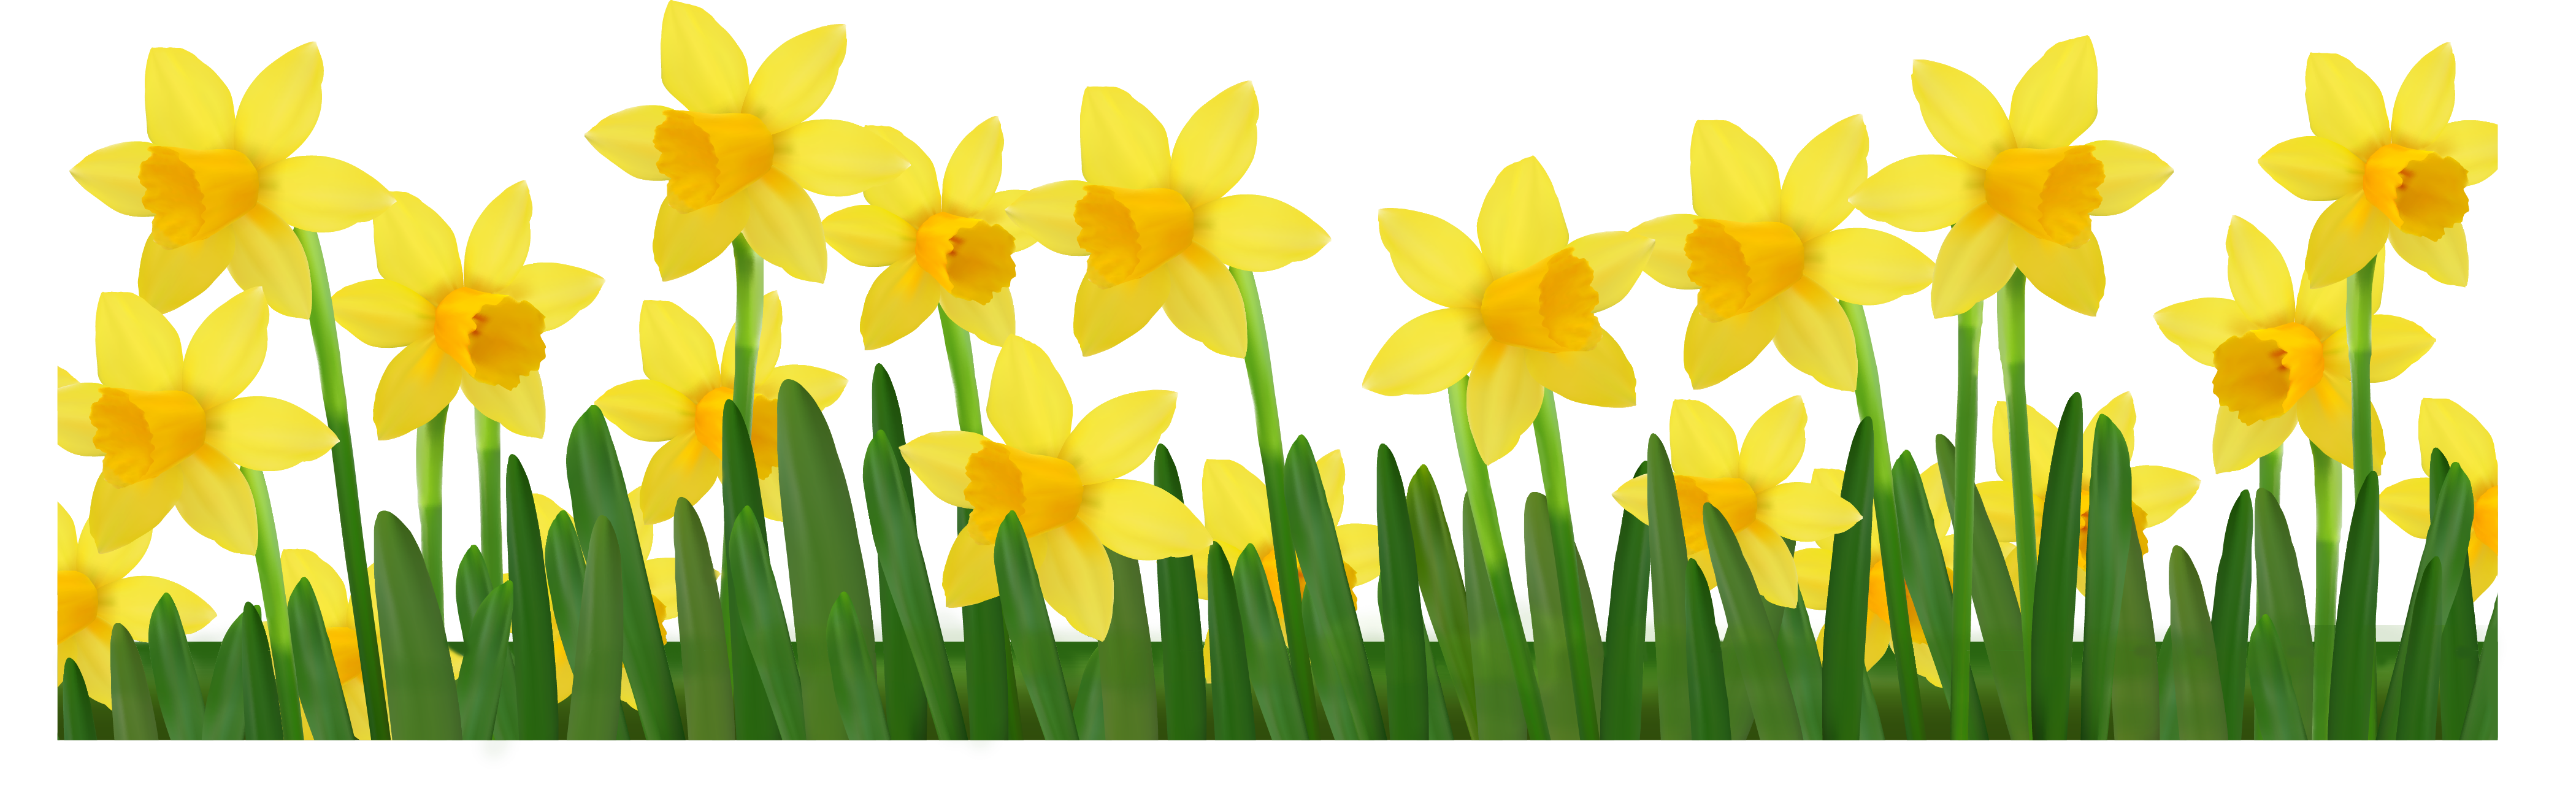 Grass With Daffodils Png Clipart Picture Clip Art Daffodils Grass